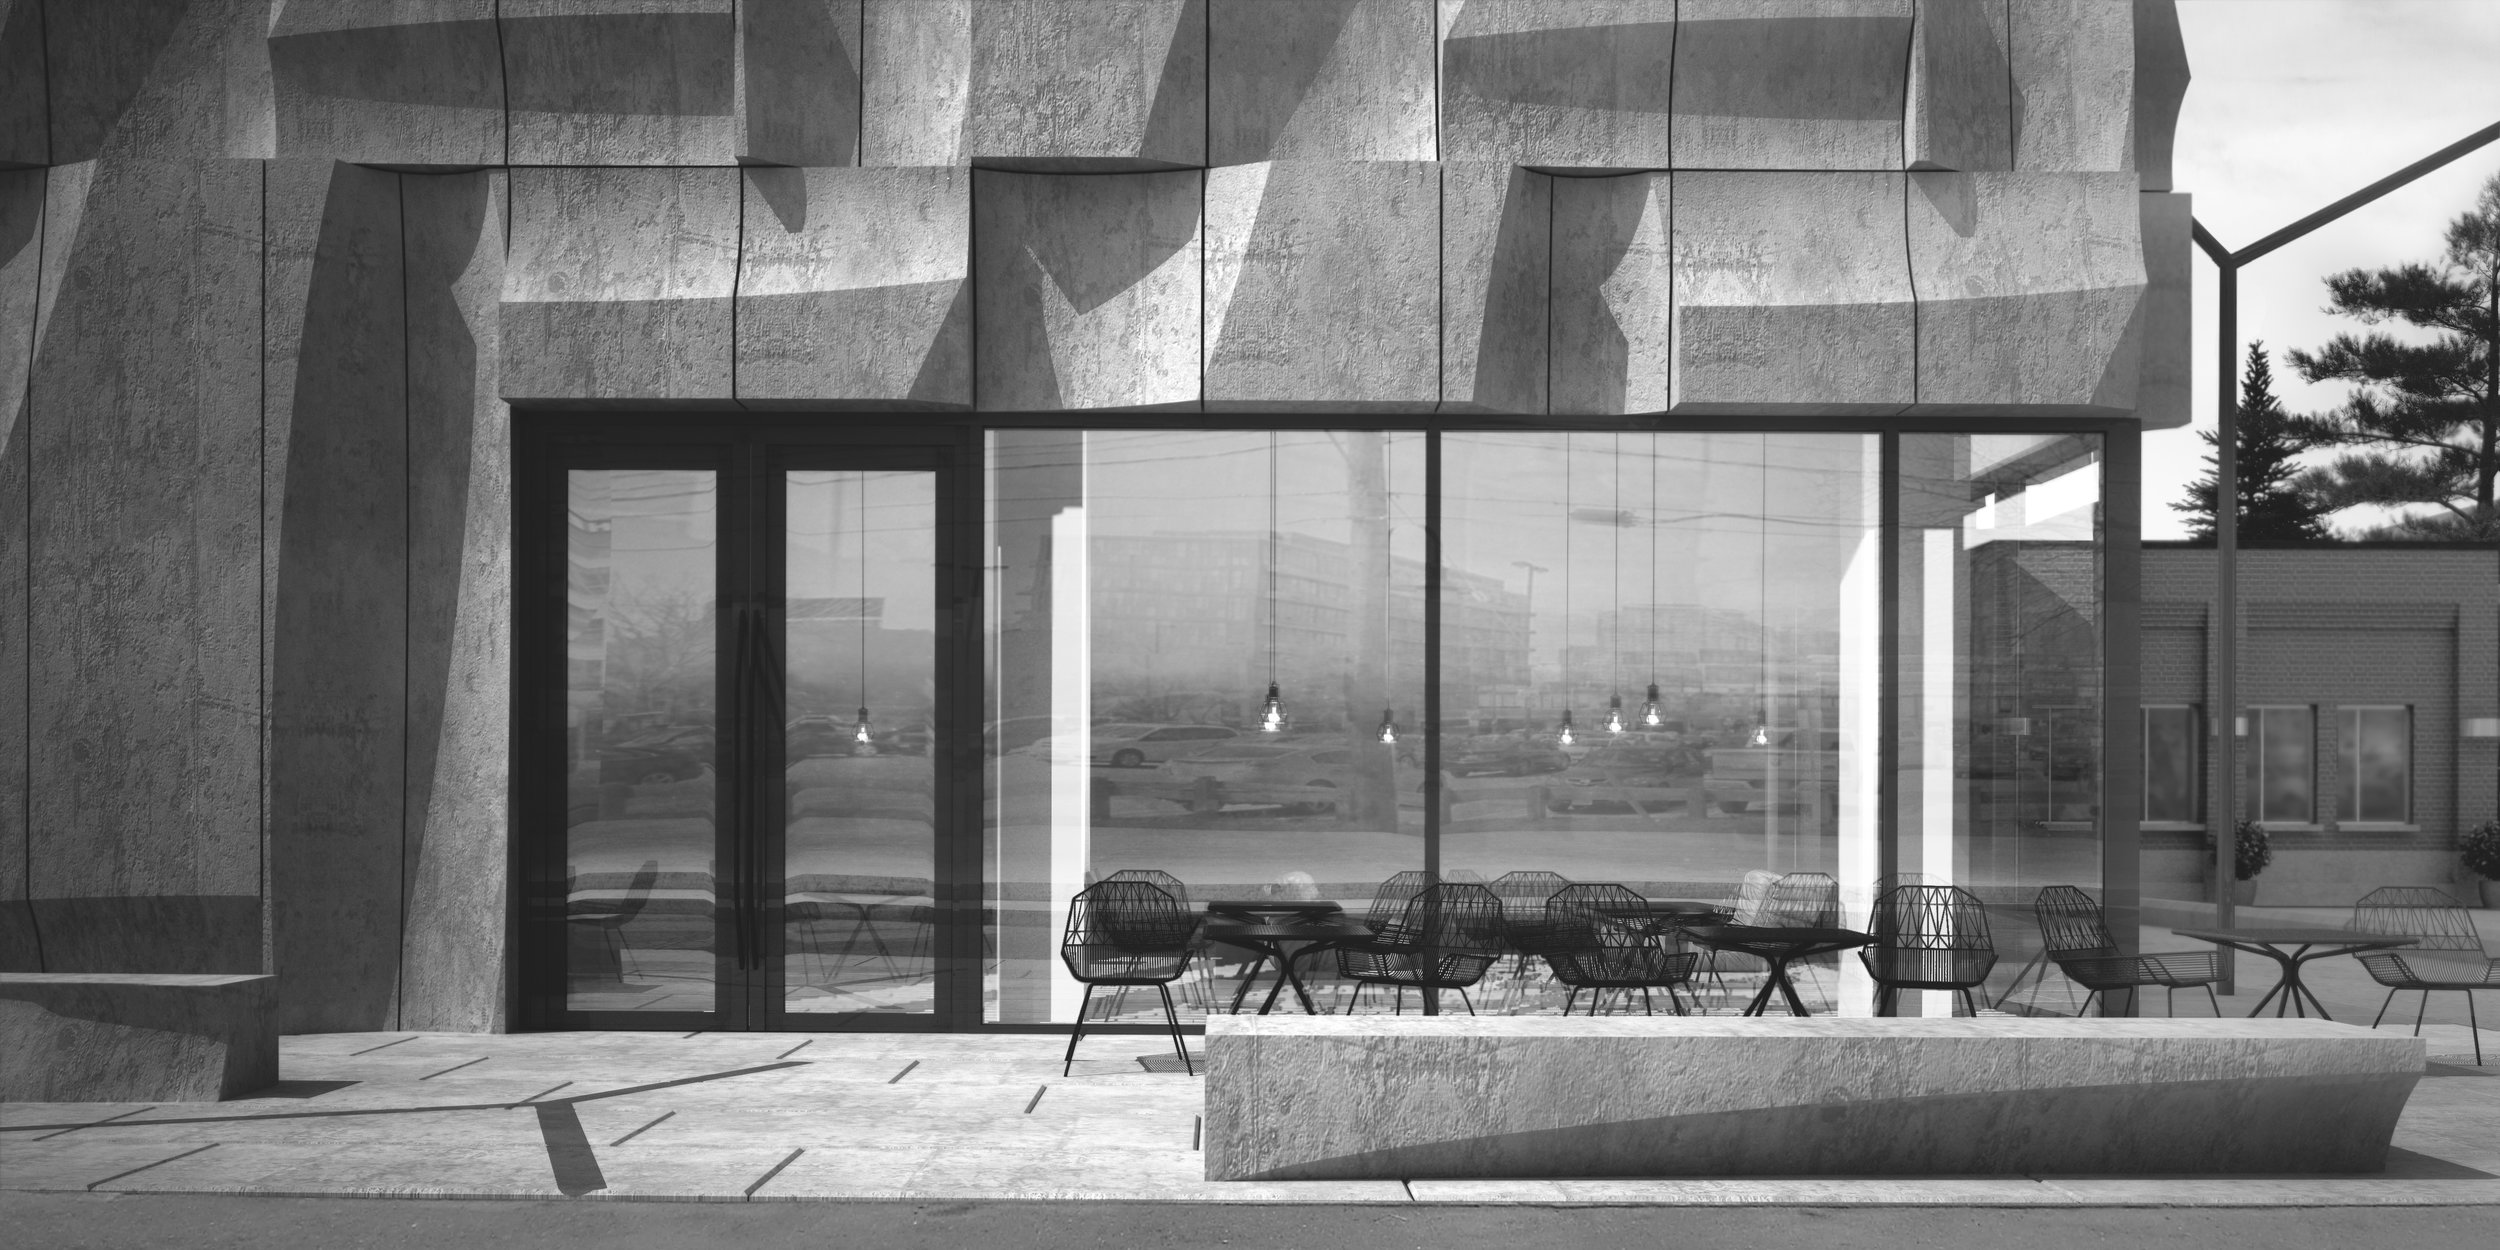 View of main floor cafe with concrete bench